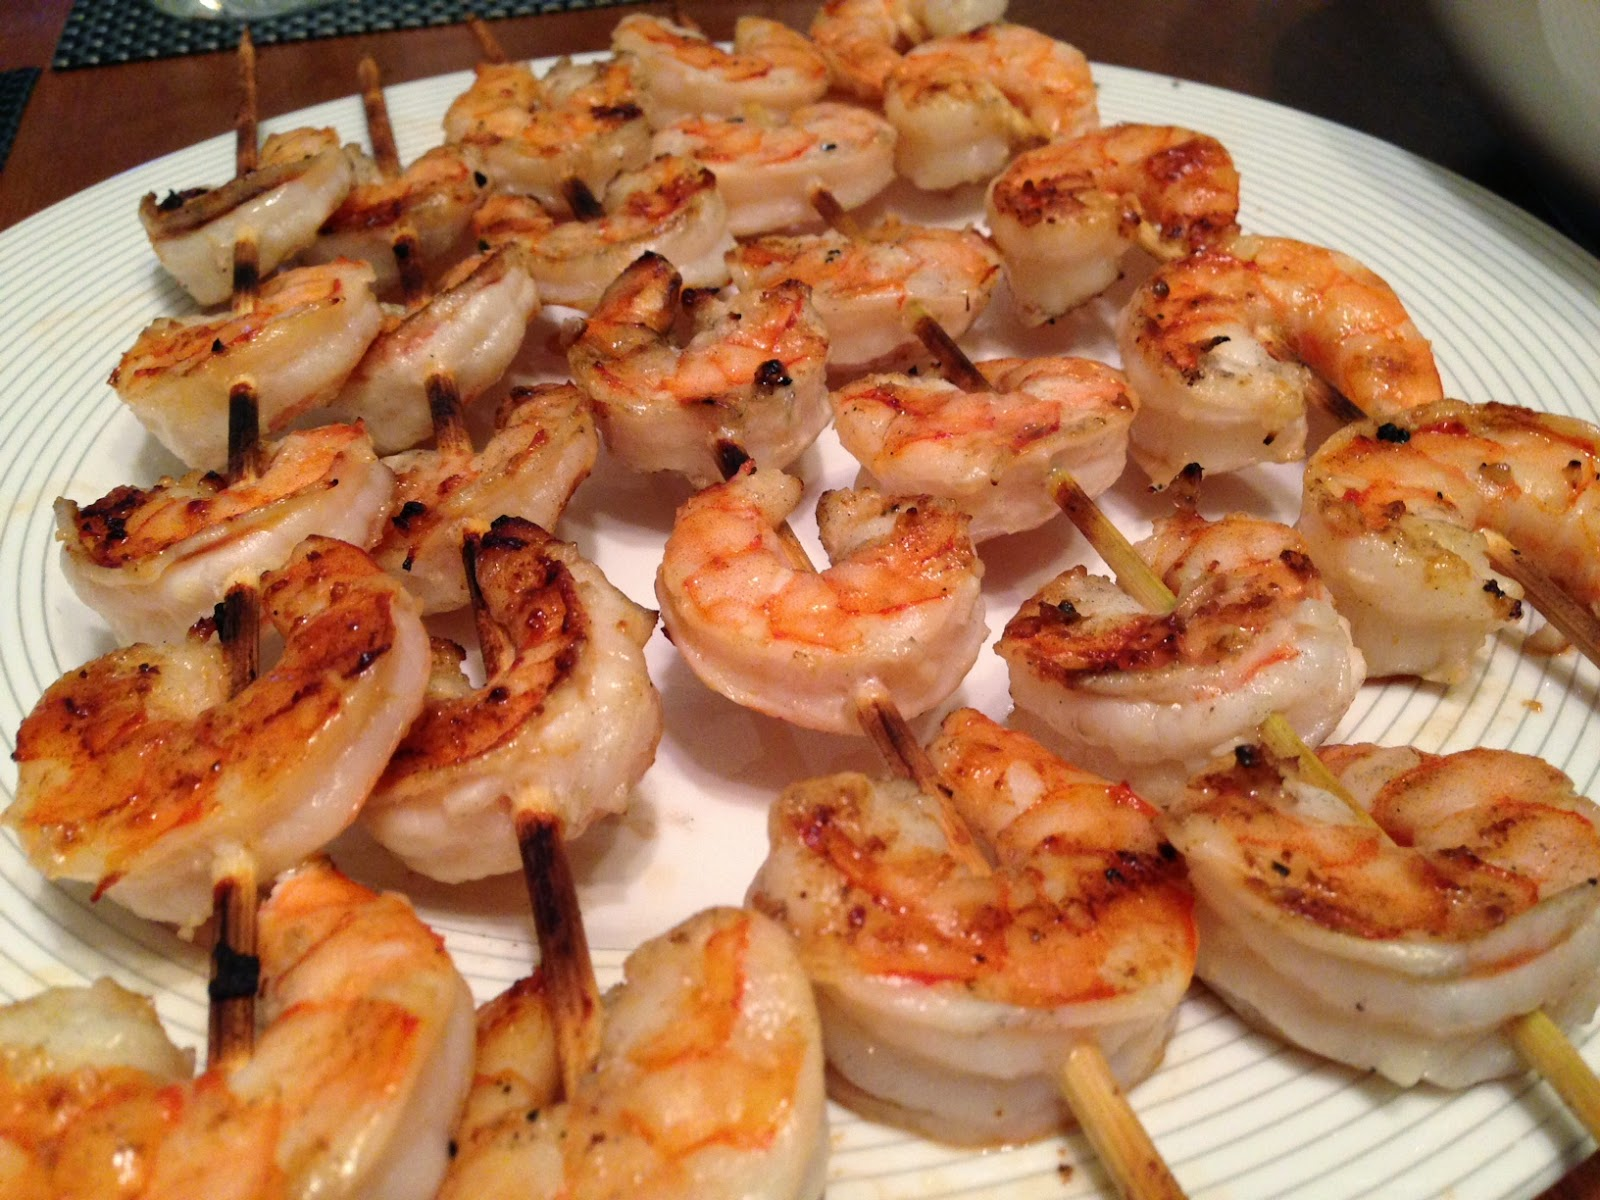 Much Ado About Somethin: Garlic Shrimp Kabobs